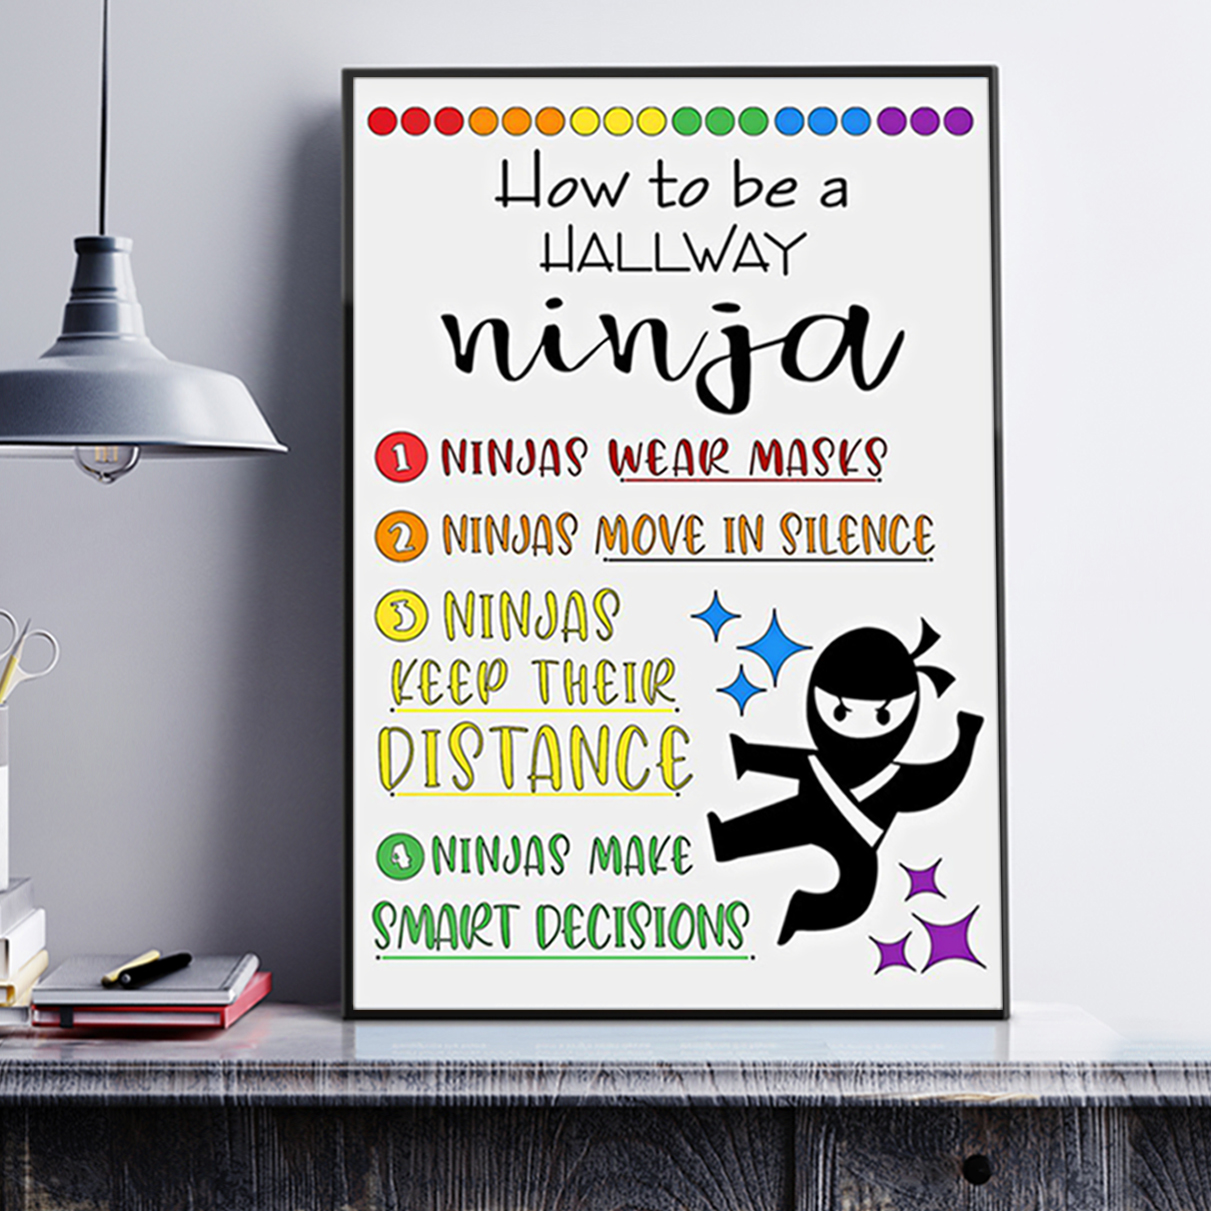 How to be a hallway ninja poster A3